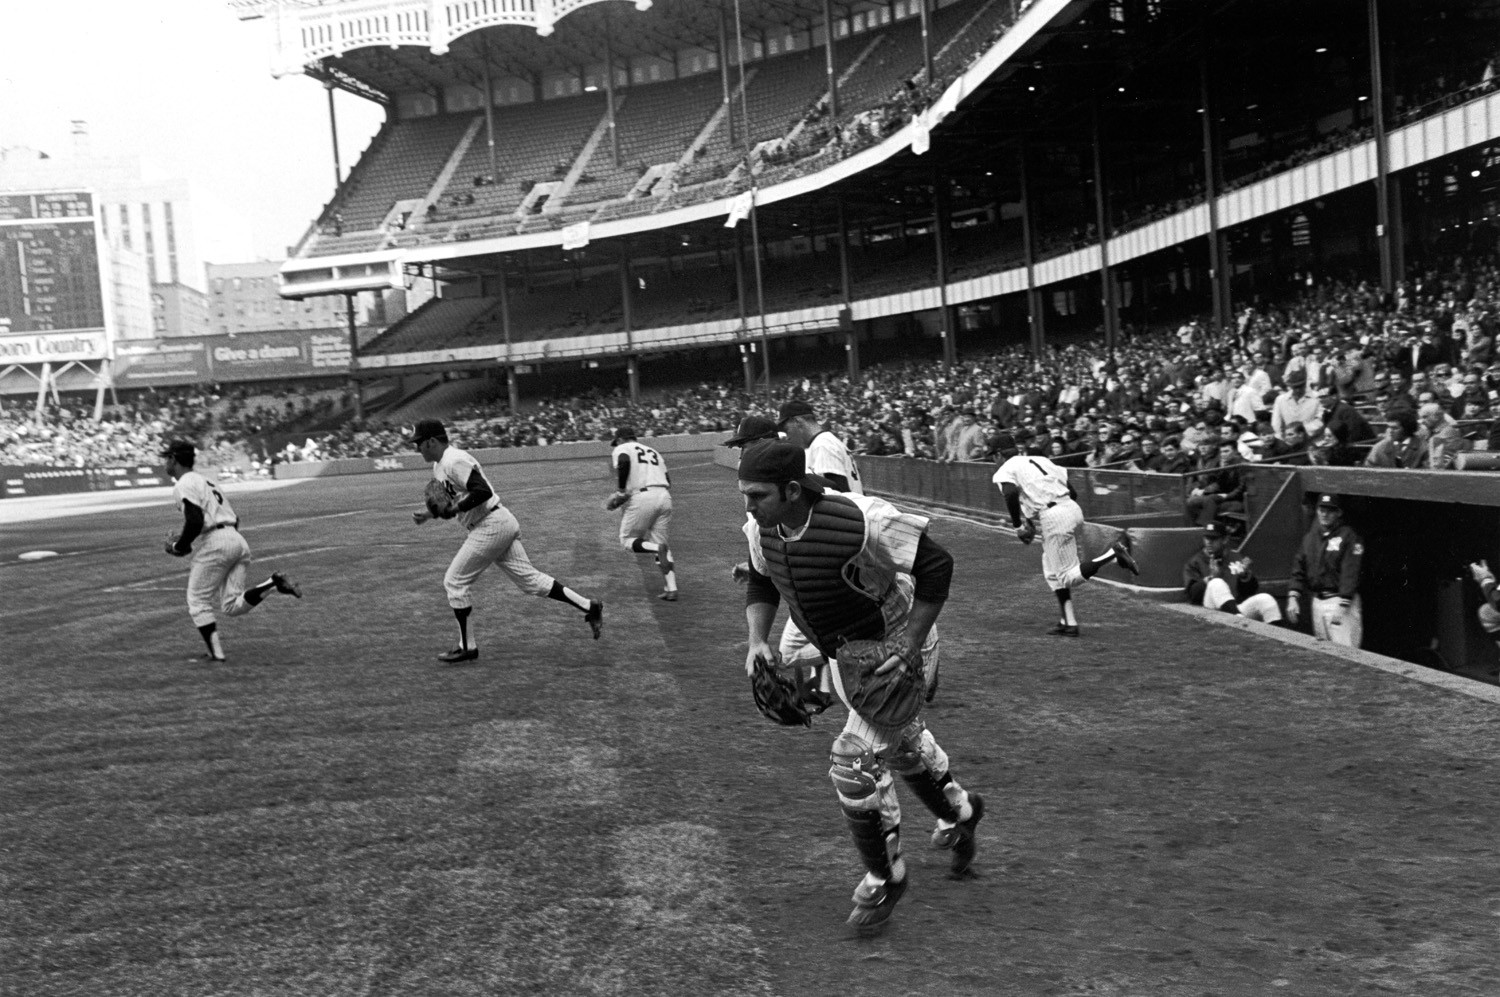 Tod Papageorge, Opening Day (Boston vs. New York), Yankee Stadium, New York, April 7, 1970